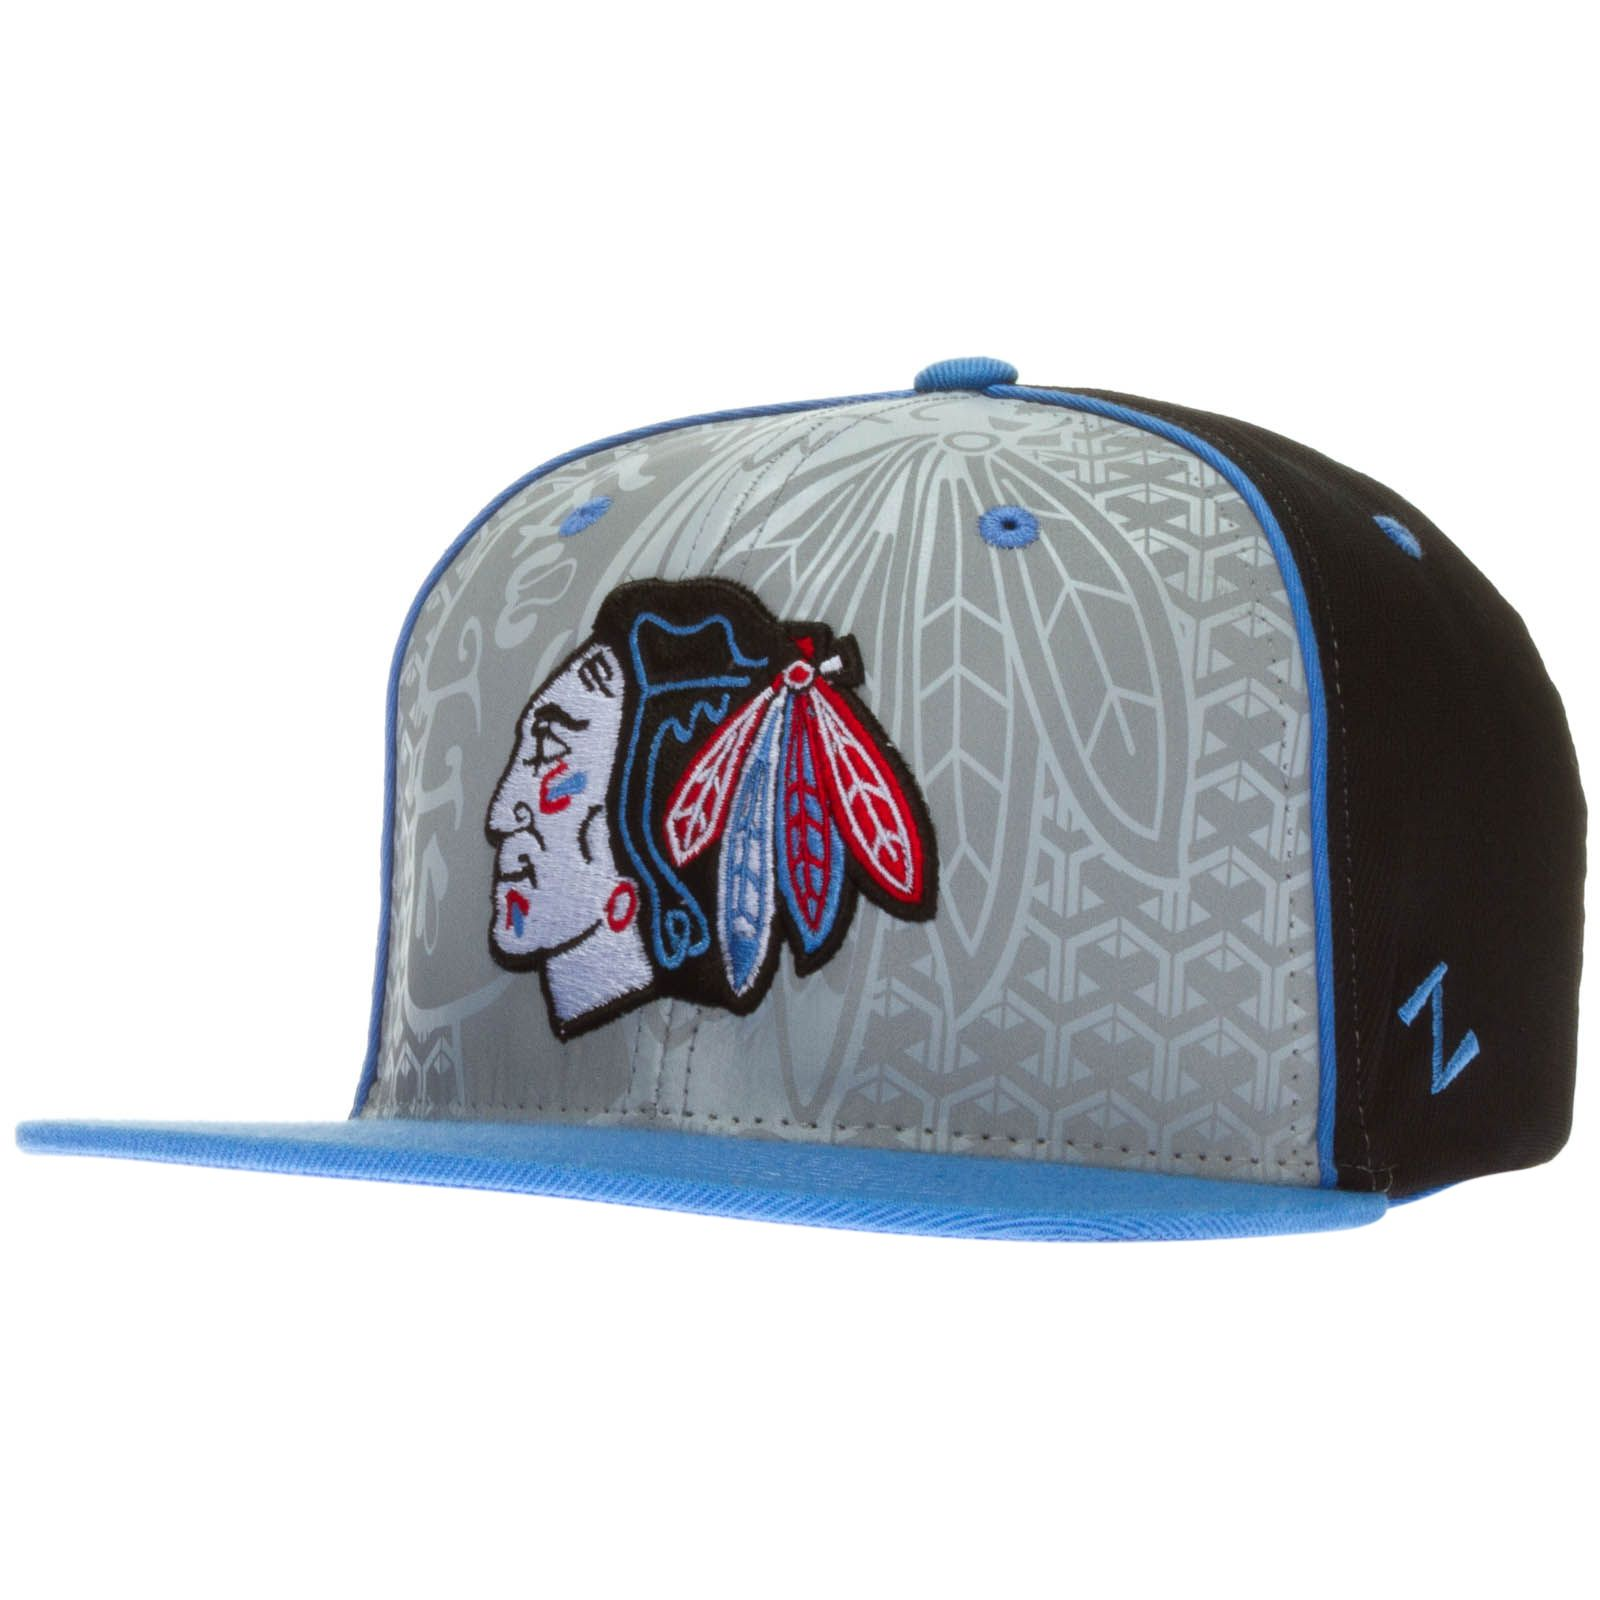 9e5e9c9781446d Chicago Blackhawks Black, Grey, and Light Blue Columbia Background Primary  Logo Snapback Hat by Zephyr #Chicago #Blackhawks #ChicagoBlackhawks